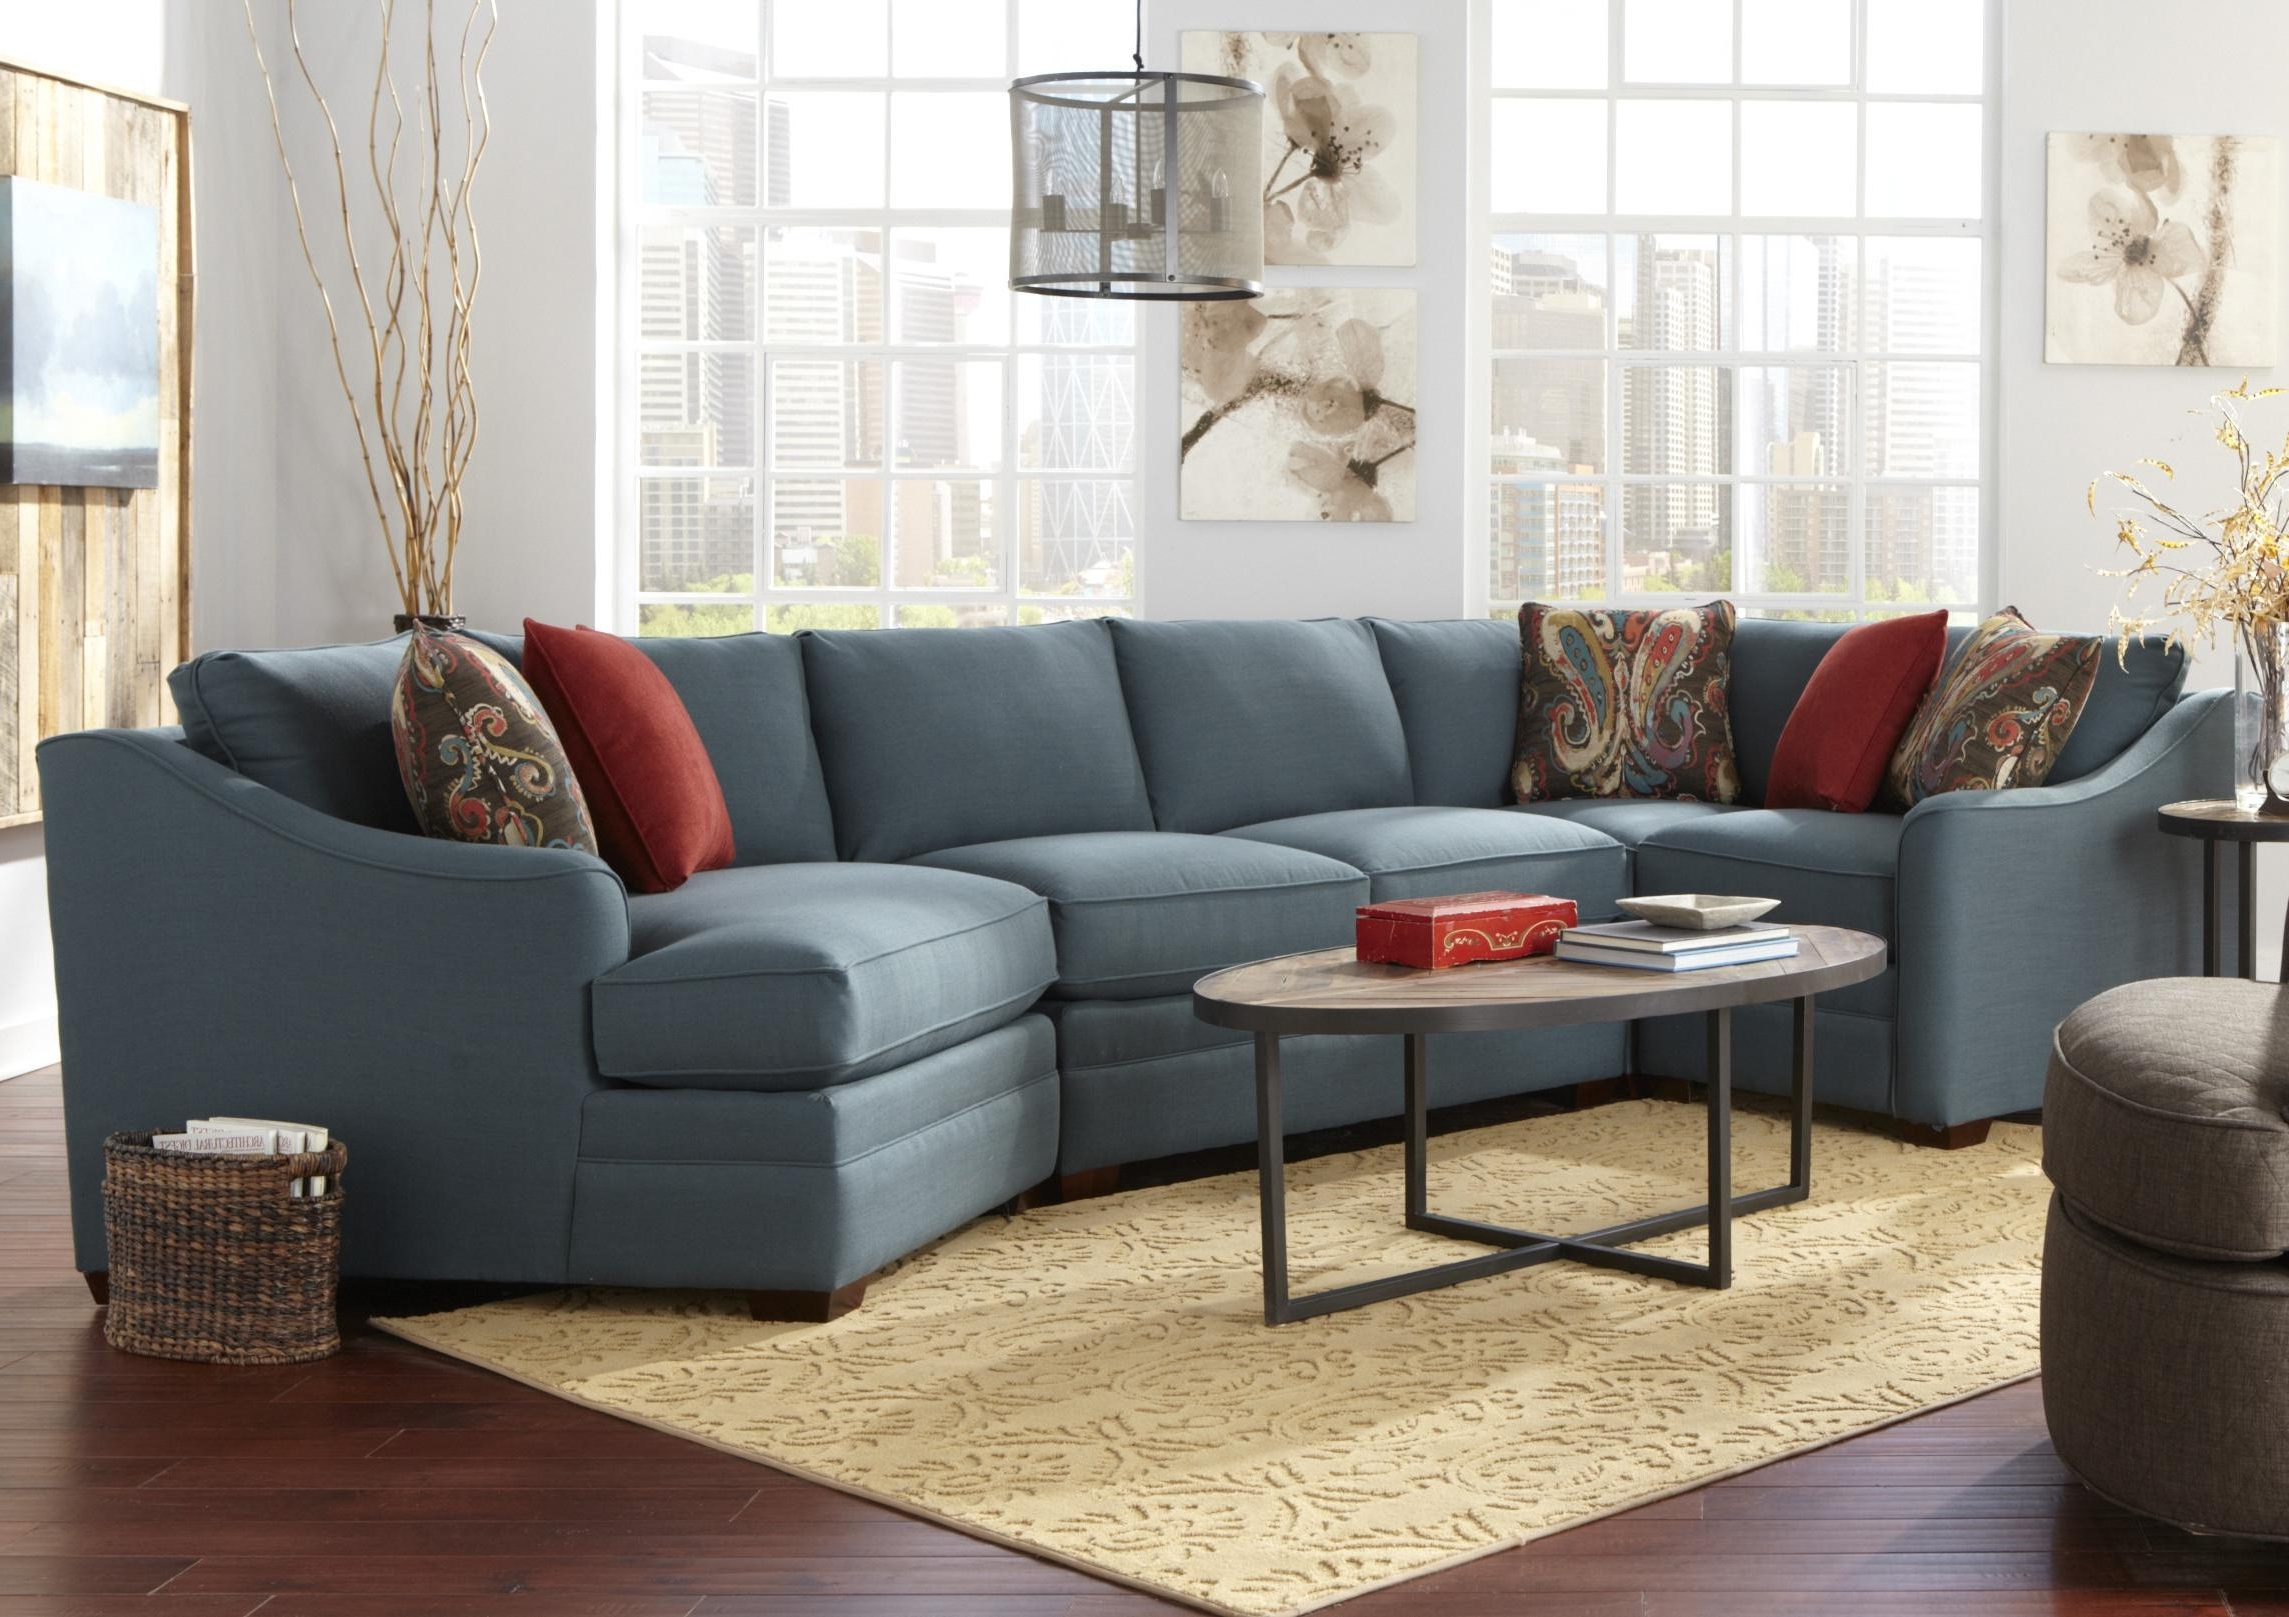 Harrisburg Pa Sectional Sofas Within Well Known Four Piece <B>Customizable</b> Sectional Sofa With Raf Cuddler (View 12 of 20)